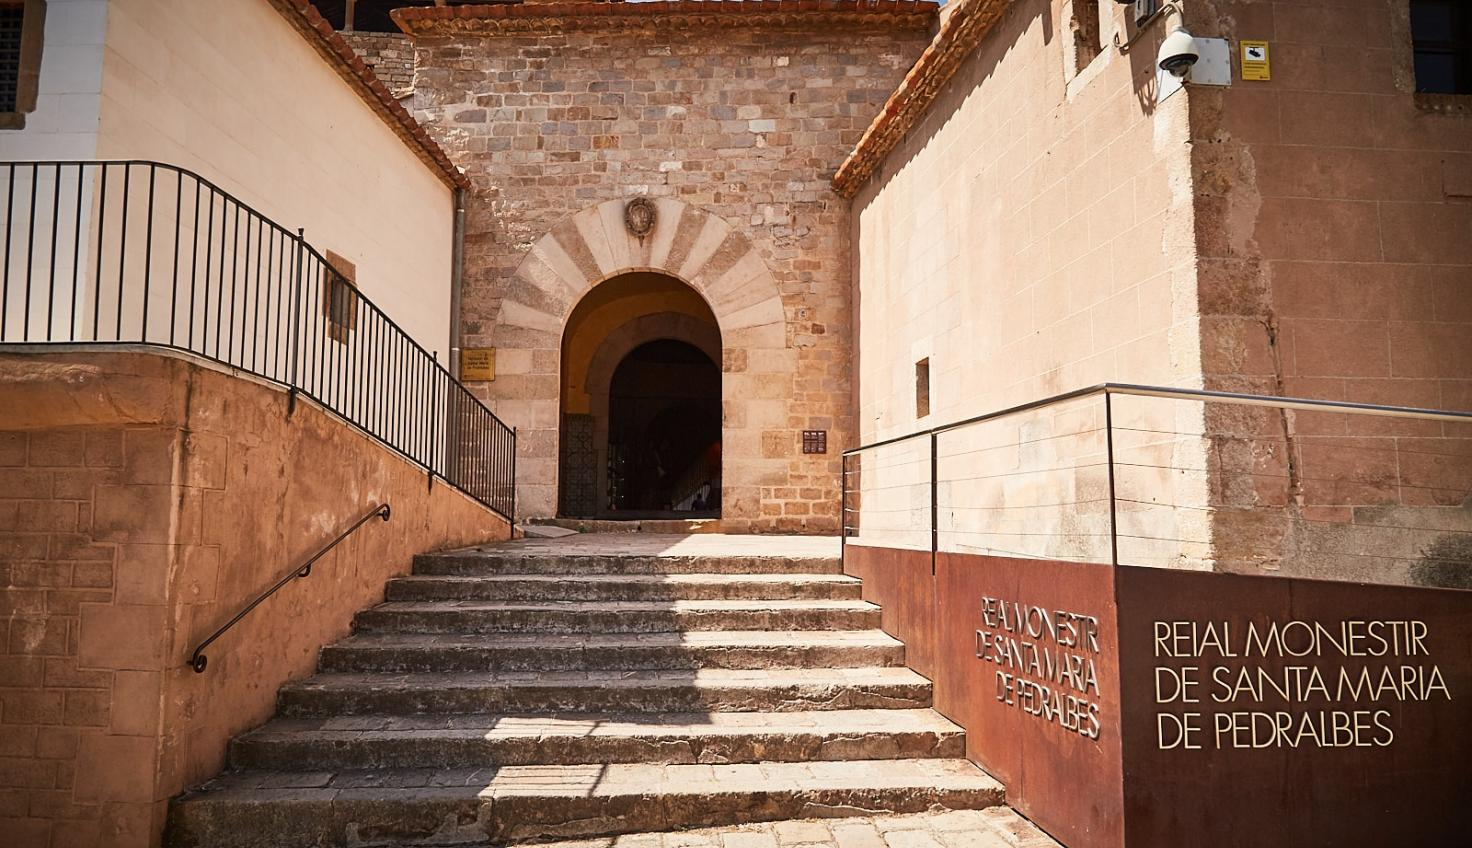 Photo Royal Monastery of Santa Maria of Pedralbes